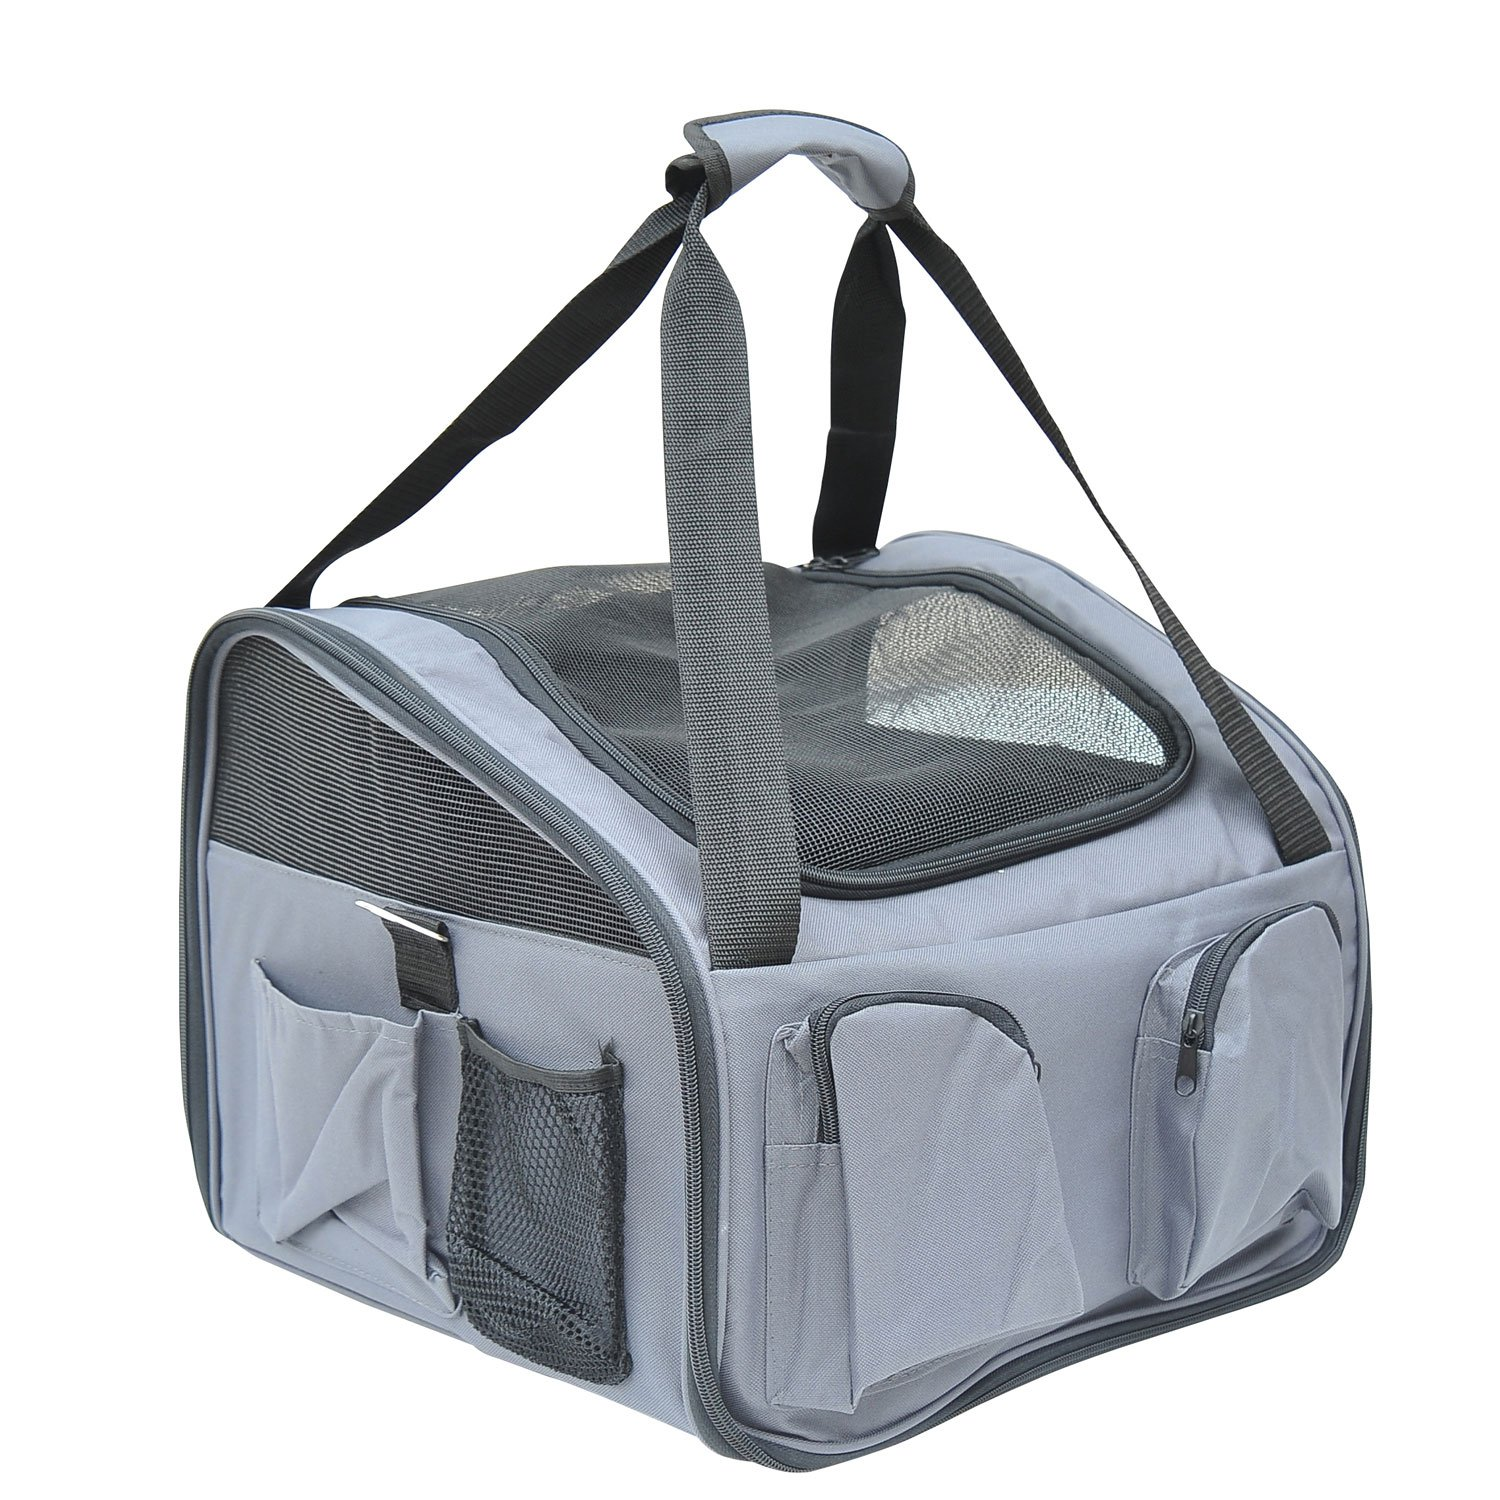 PawHut 3in1 Pet Car Booster Seat Dog Carrier Travel Bag Gray D1-0121